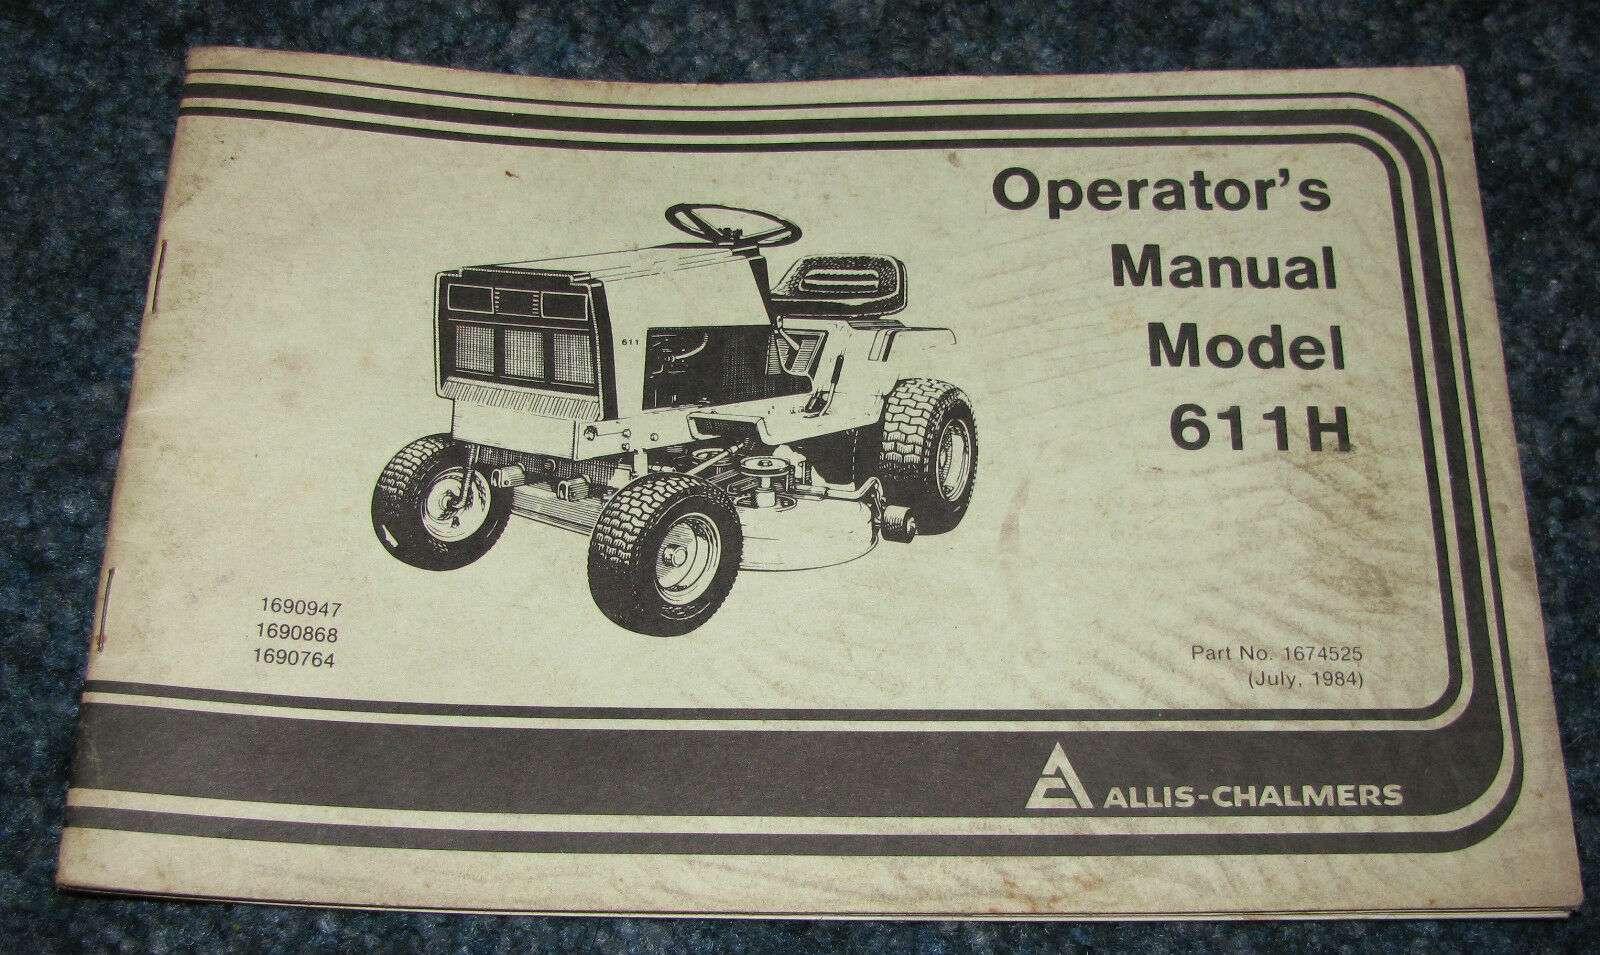 611 Allis Chalmers Wiring Schematic Library Garden Tractor Diagram Pics H Lawn Operators Owners Manual Ac 611h 1 Of 1only